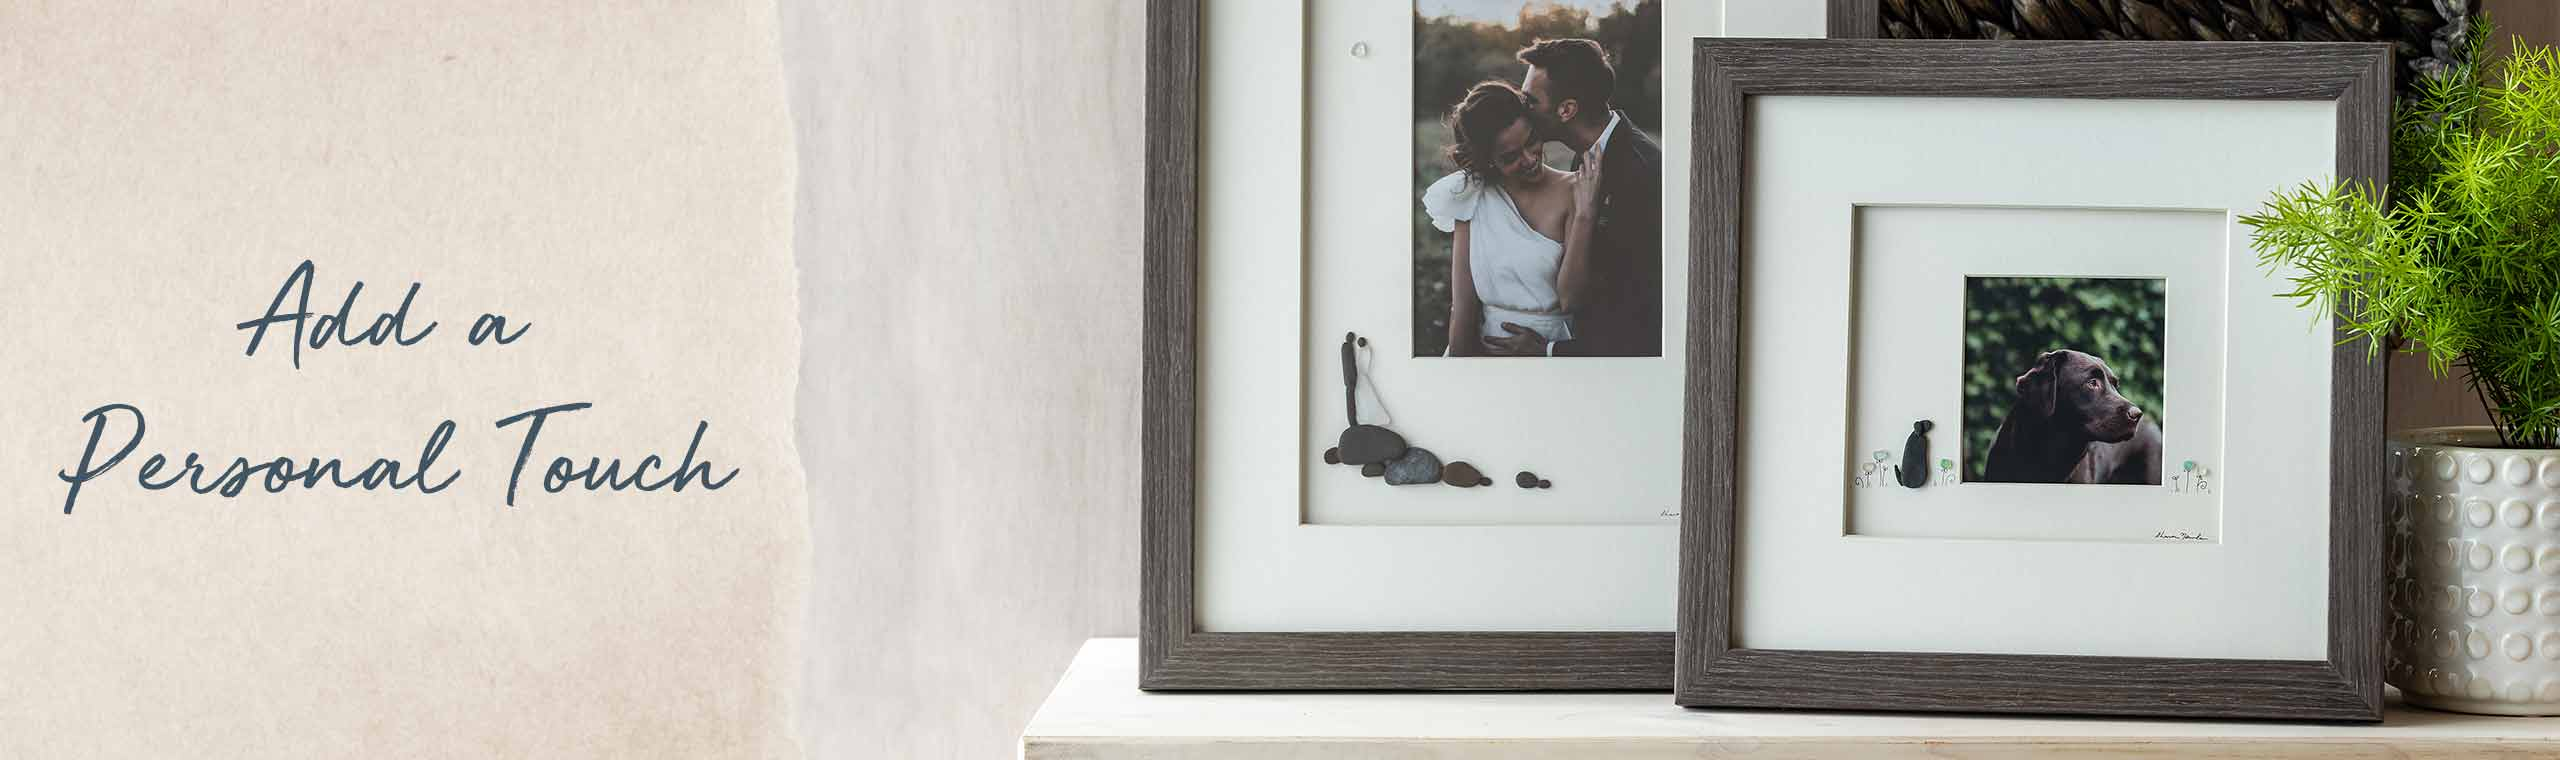 Add a Personal Touch. frames on a table with people made of stones and a couple in the photo